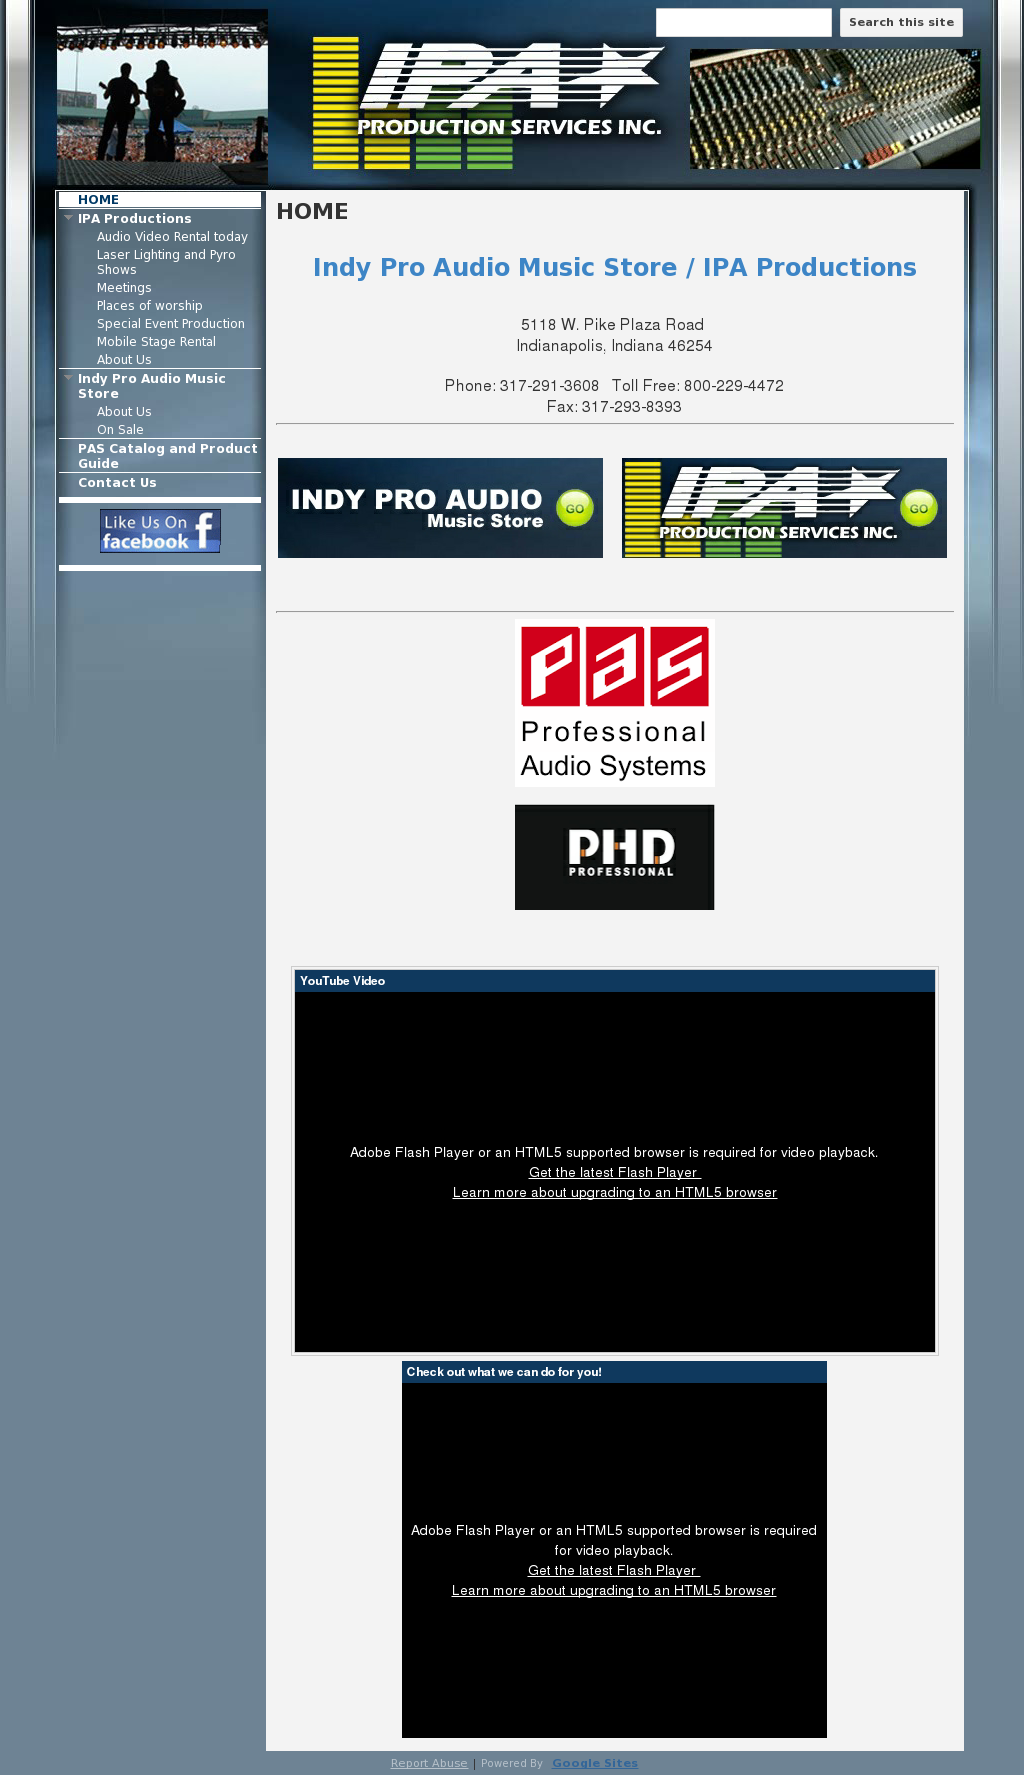 Indy Pro Audio Music Store Competitors, Revenue and